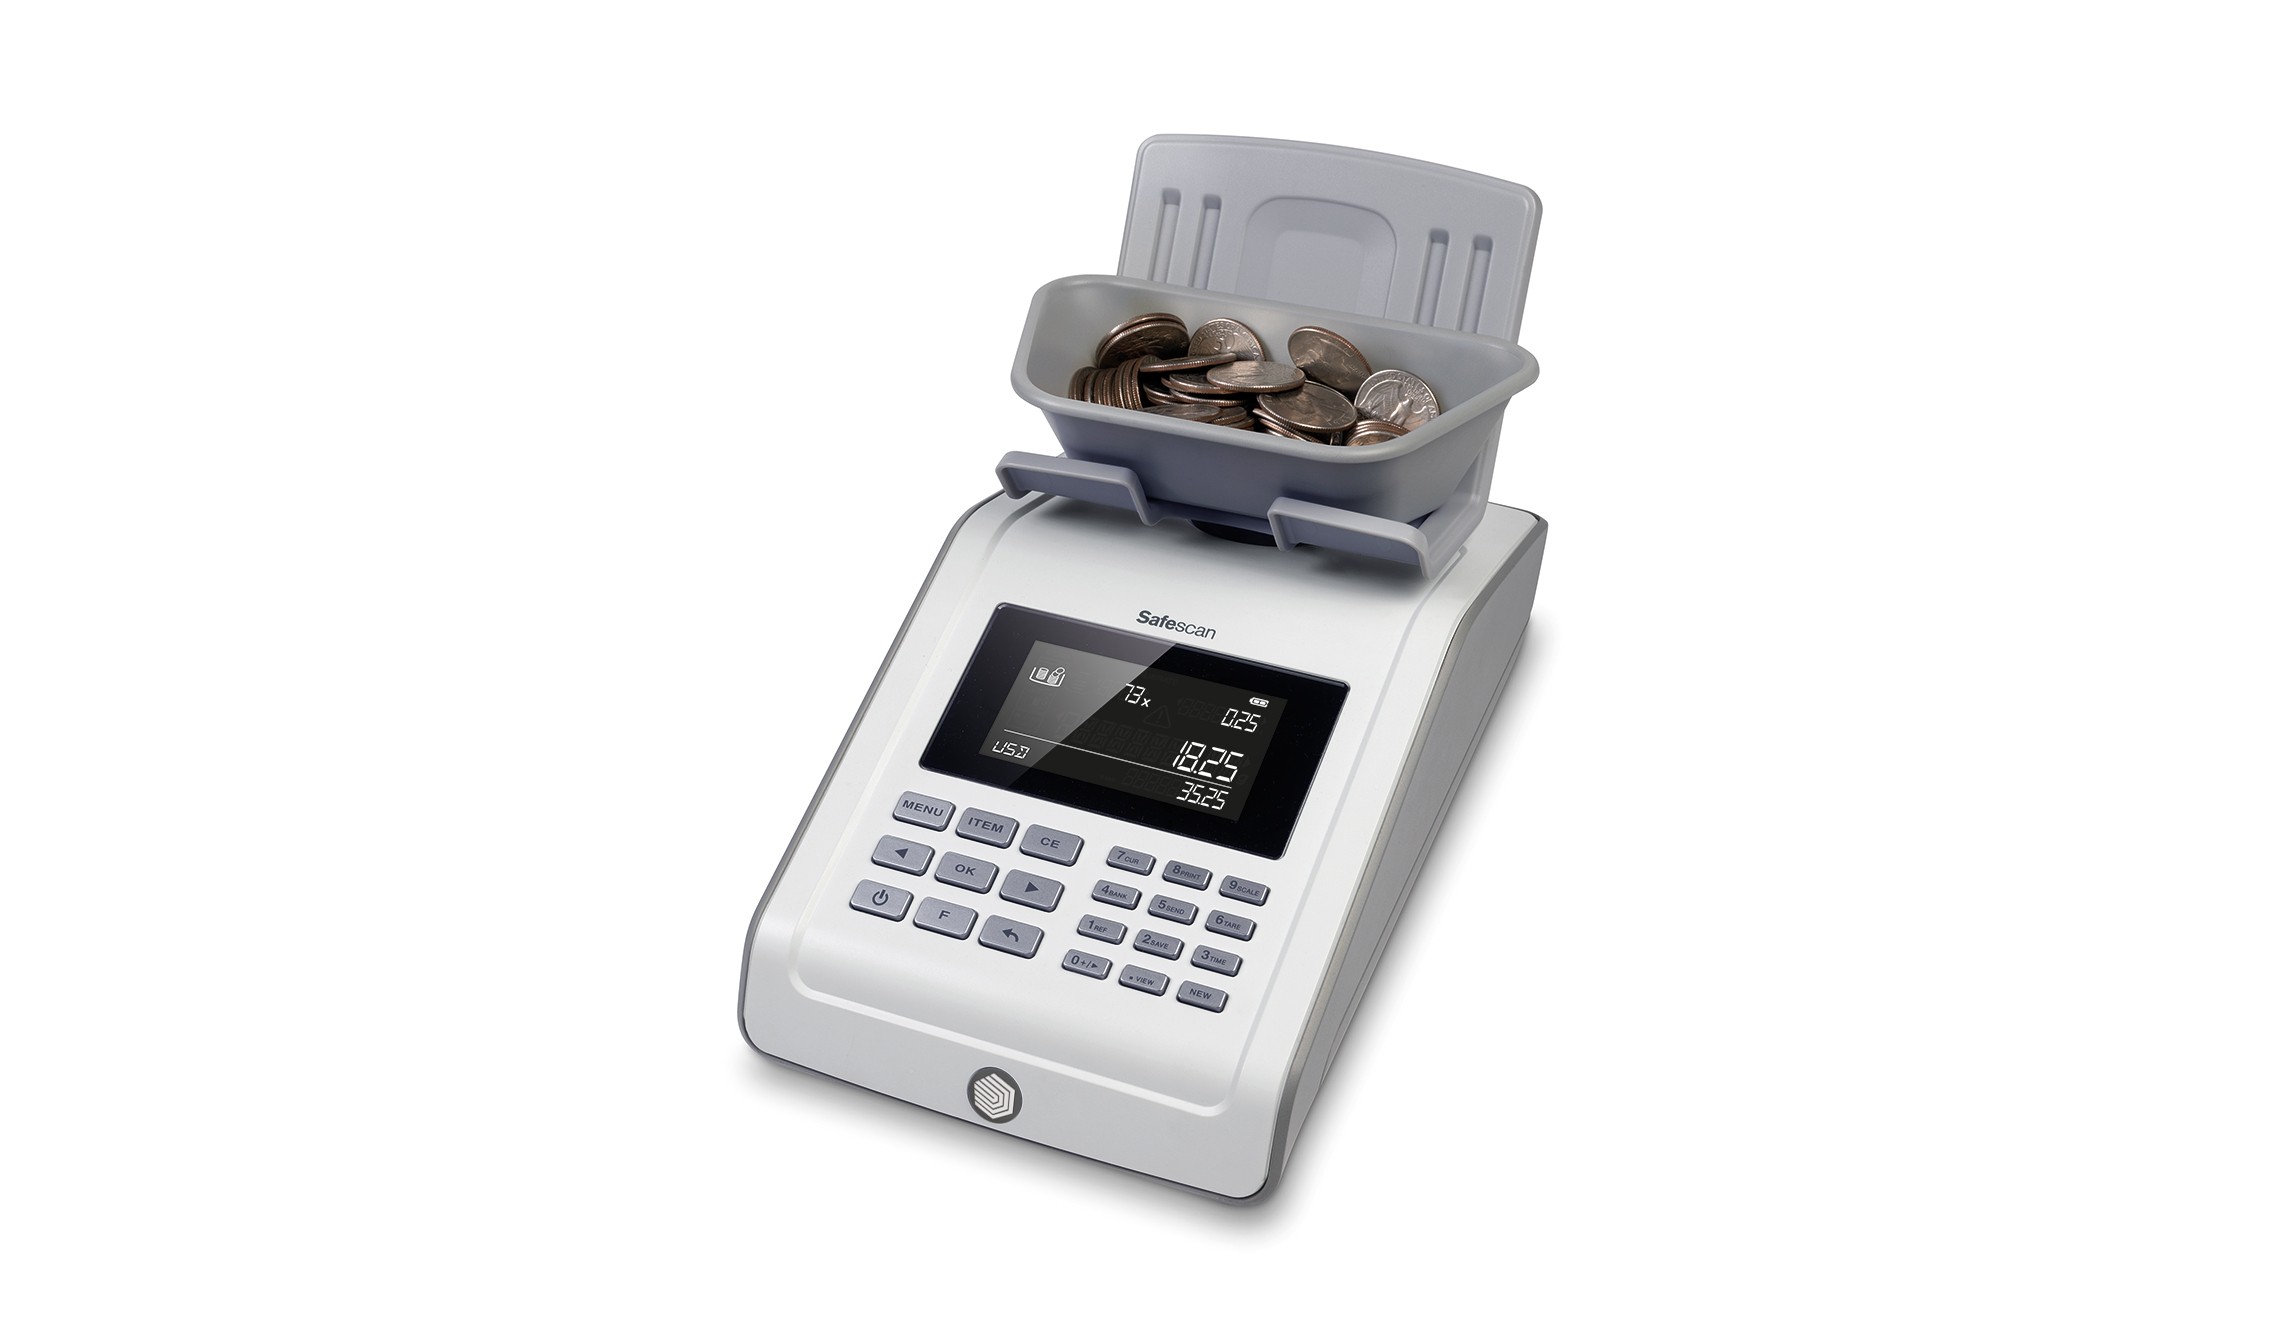 safescan-6185-coin-counter